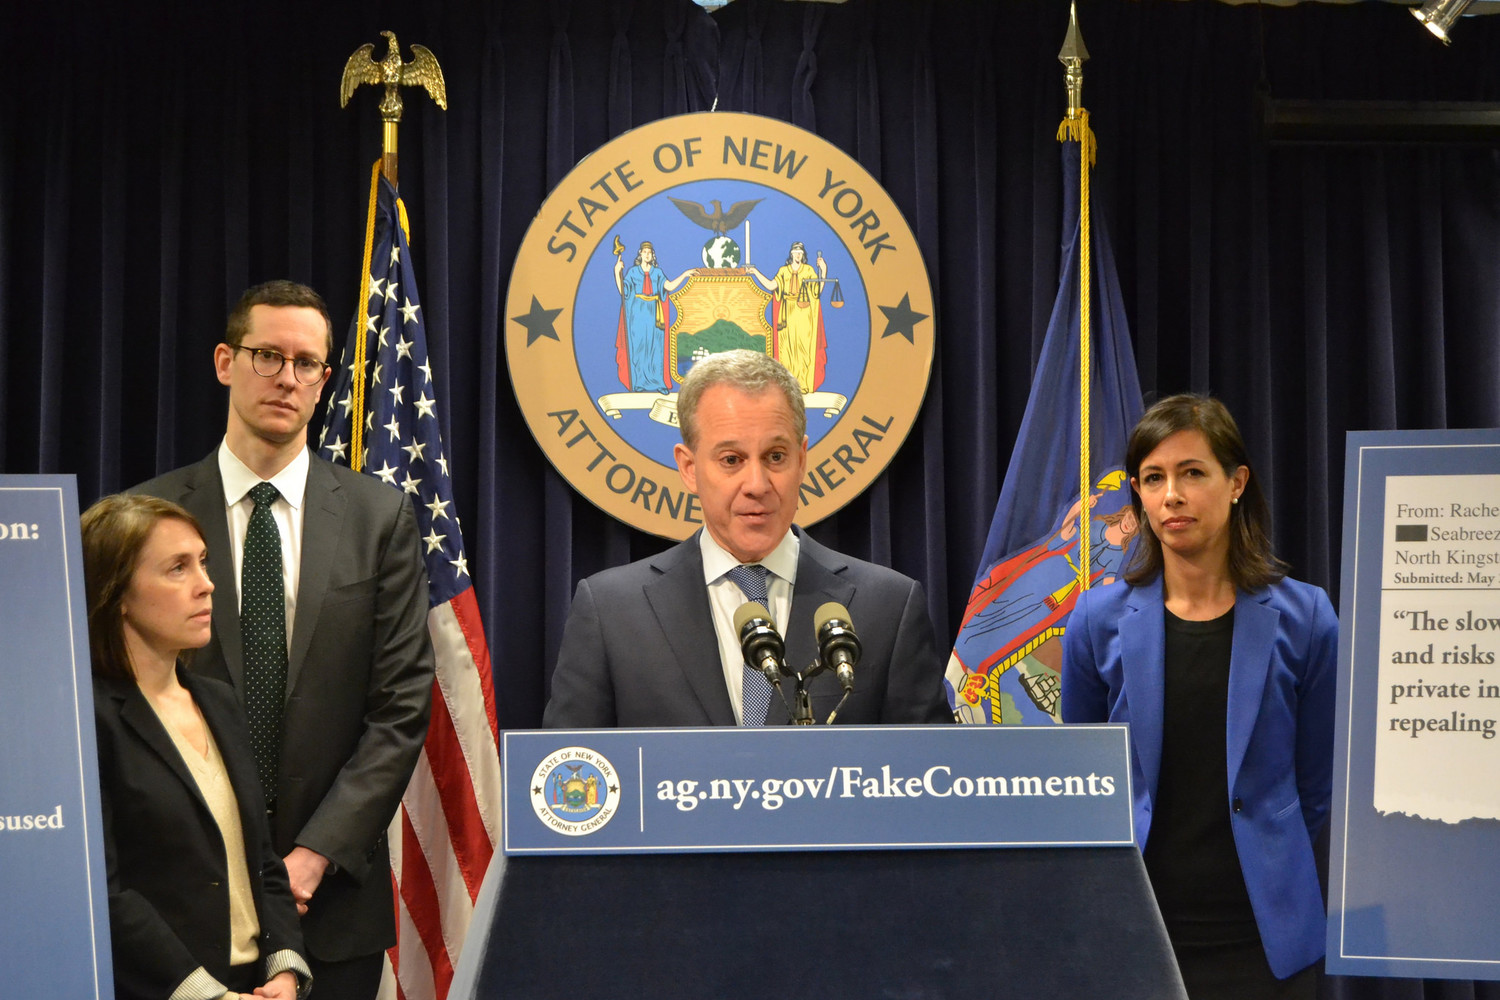 Eric Schneiderman, a former state senator who represented parts of Riverdale and Marble Hill, resigned his office of state attorney general effective May 8.